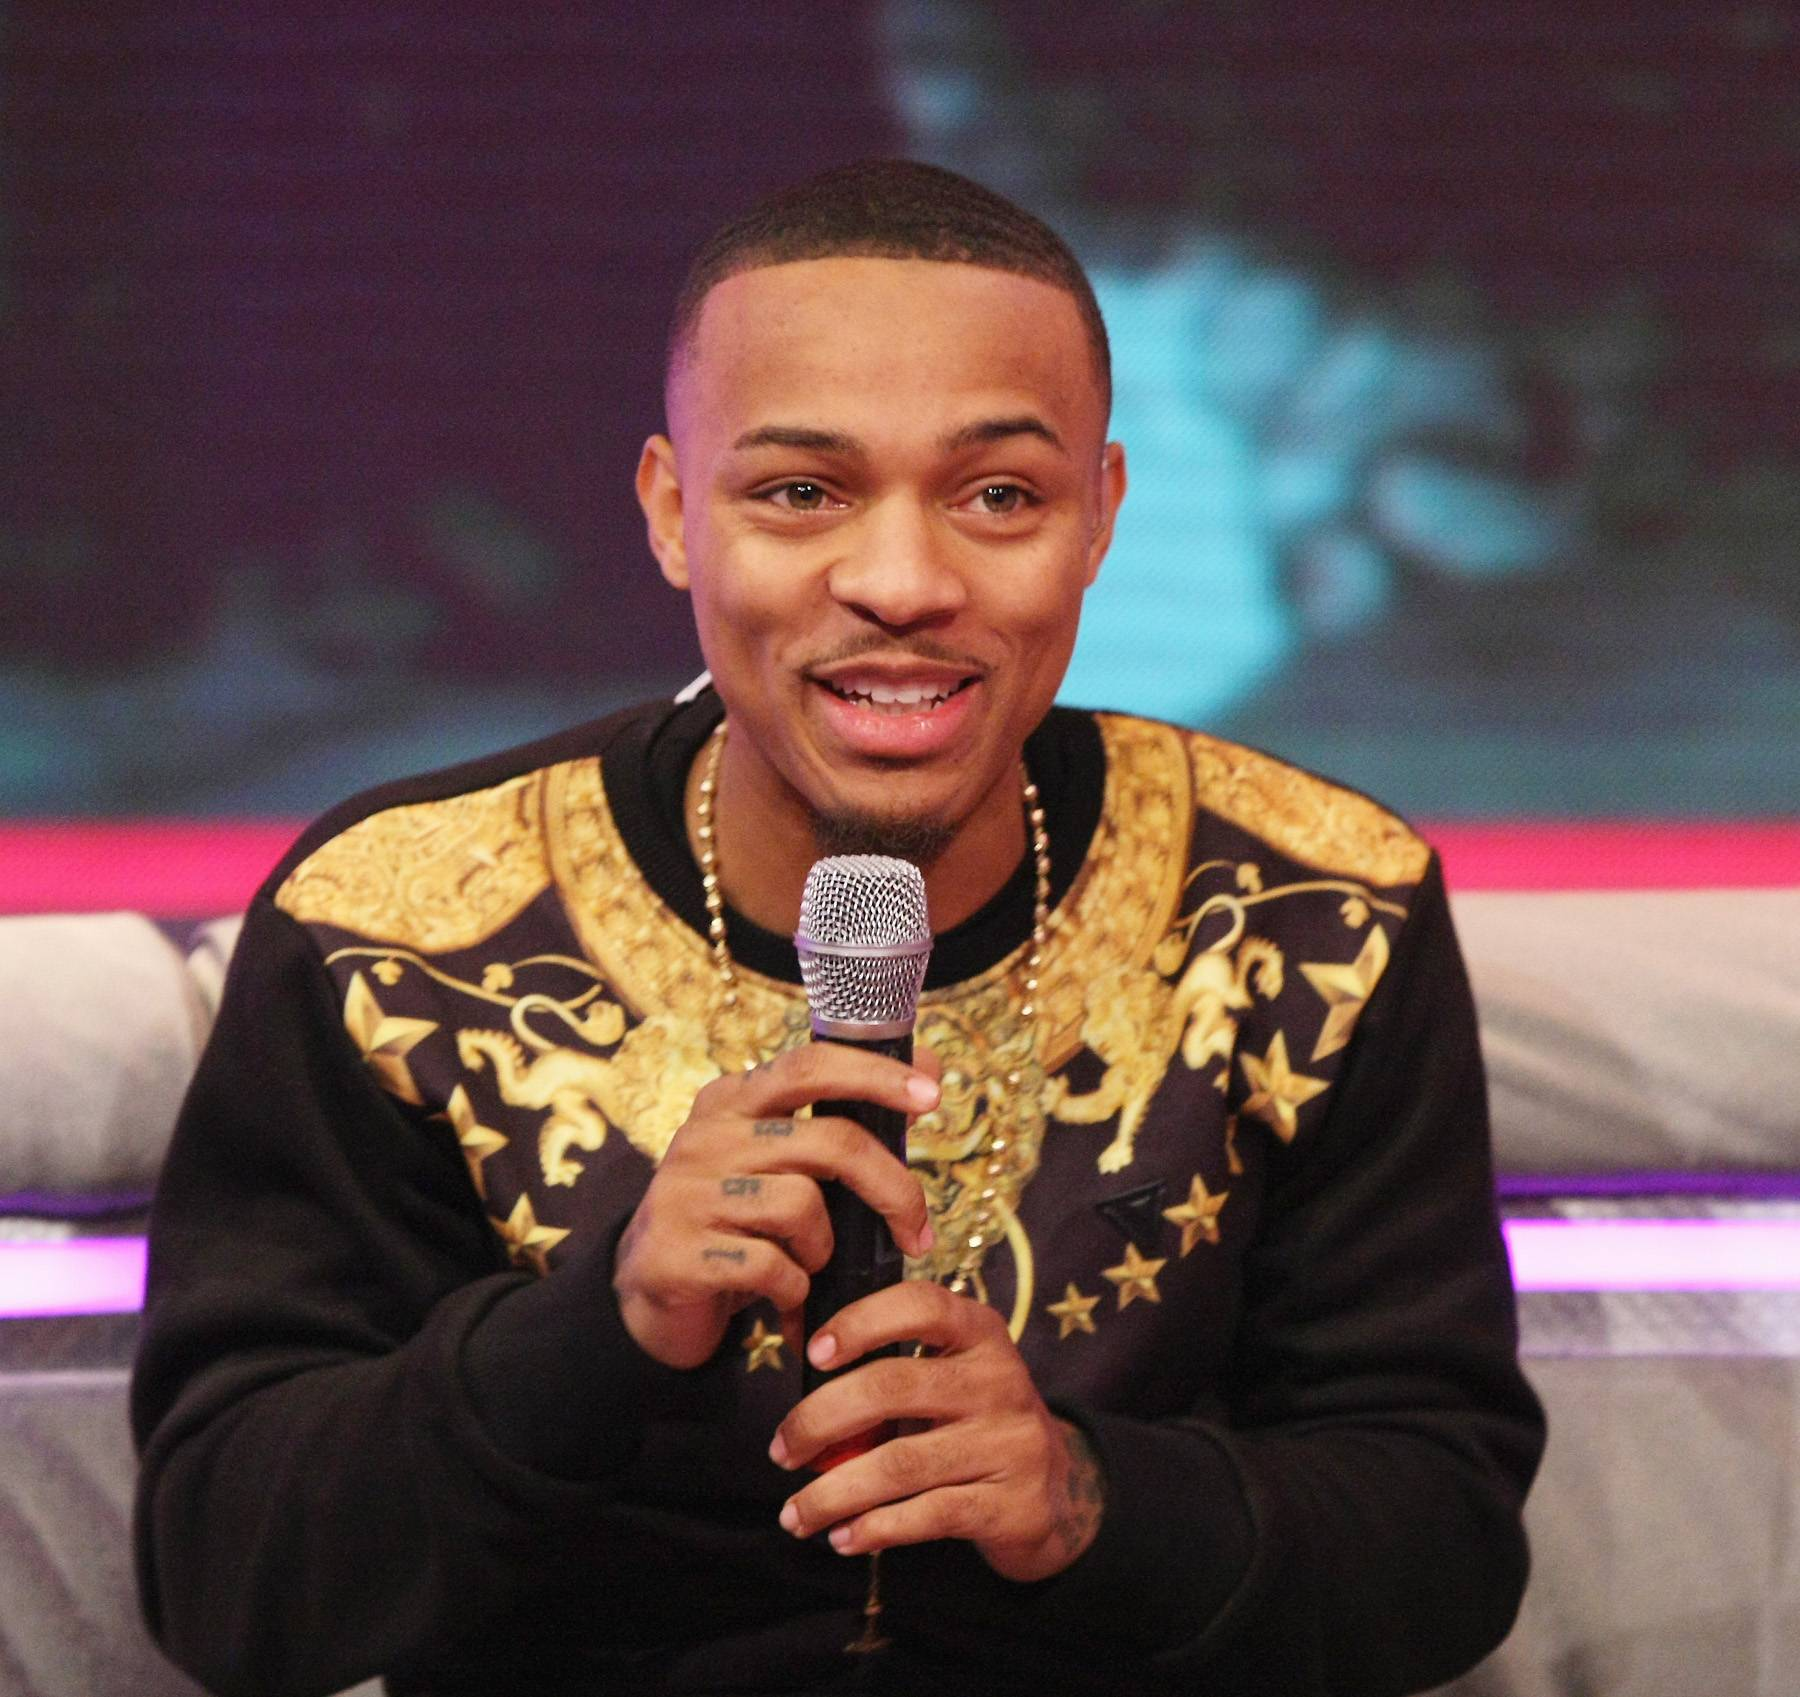 Geeked! - Host Bow Wow enjoying the company of both his co-host Keshia Chante and guest Solange. (Photo: Bennett Raglin/BET/Getty Images for BET)